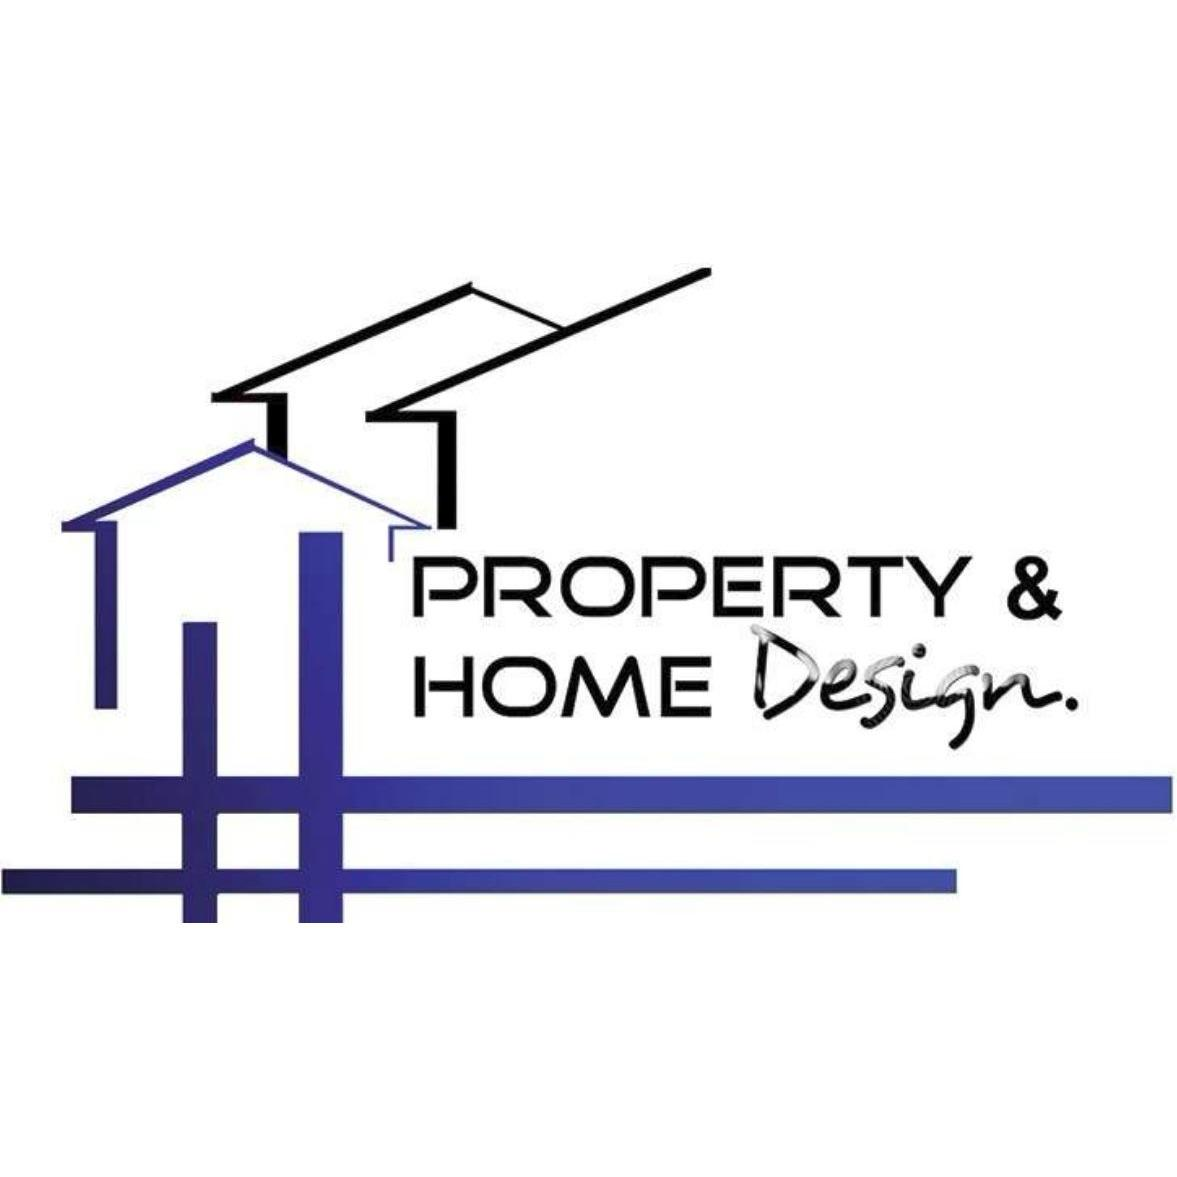 Property & Home Design